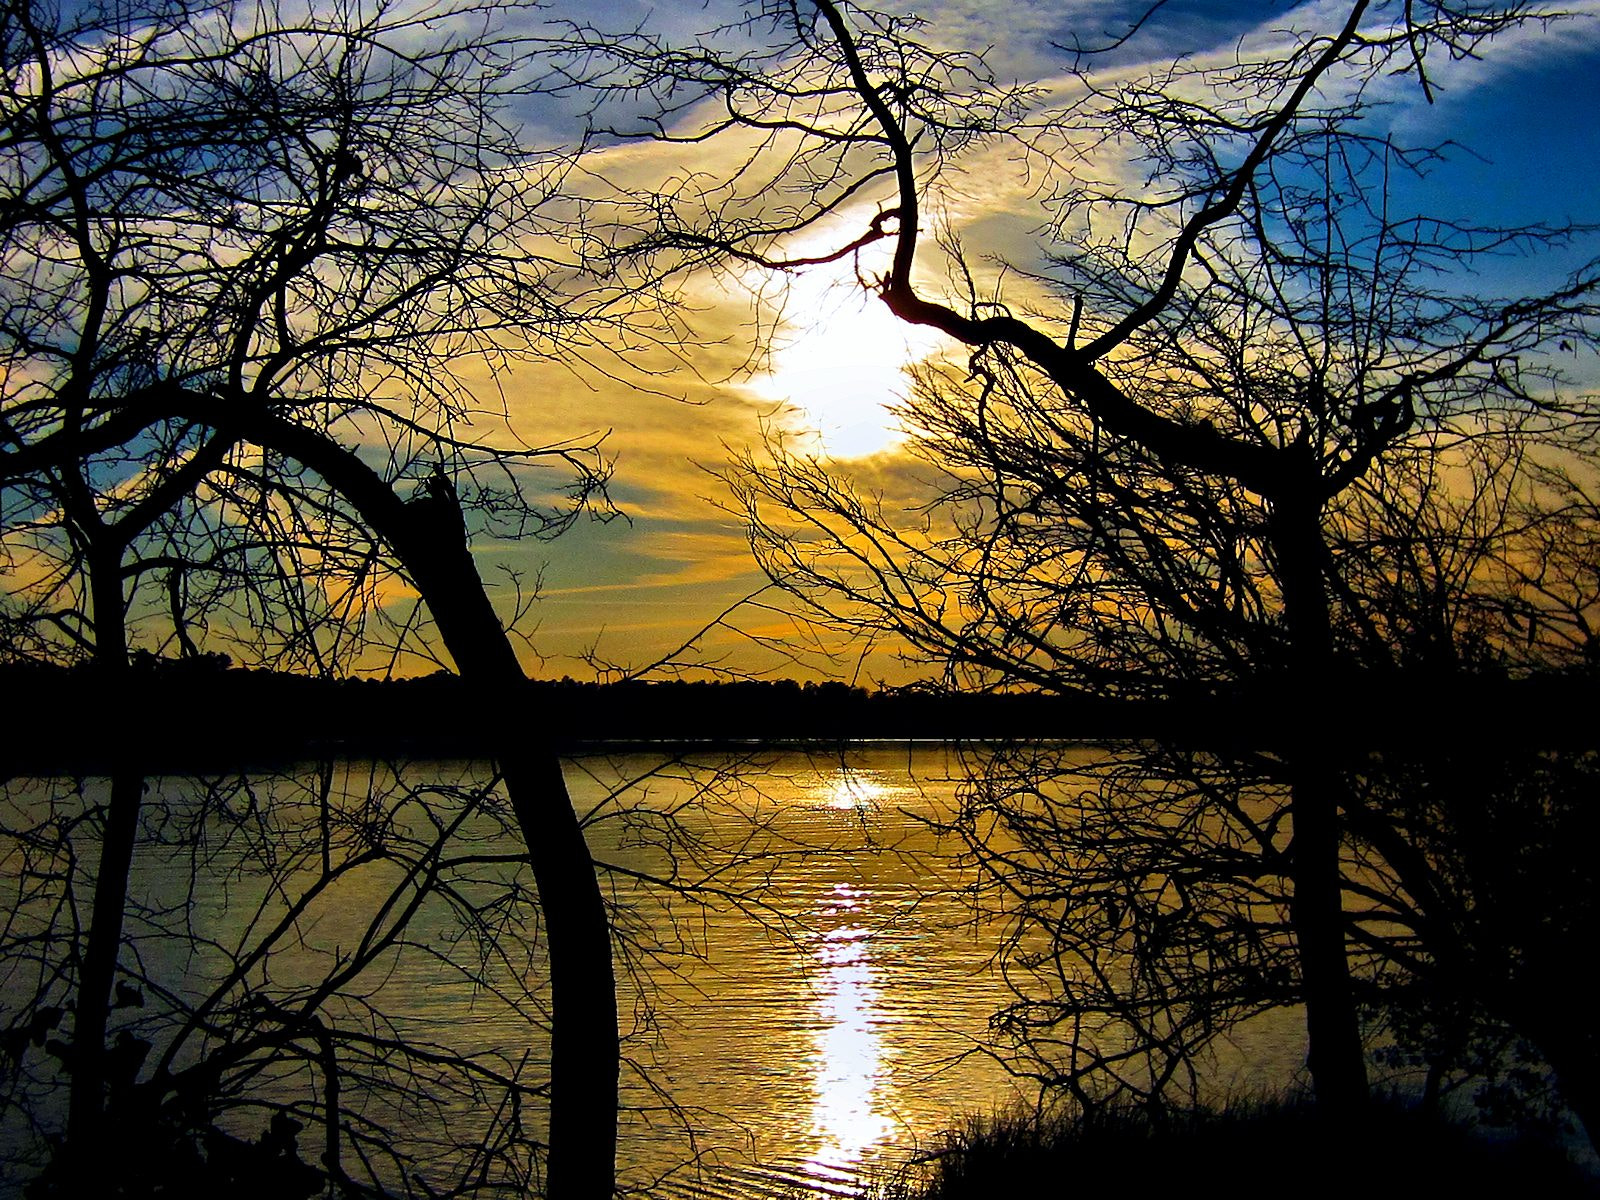 Photograph Reflective Afternoon by SusanAnn Avery on 500px